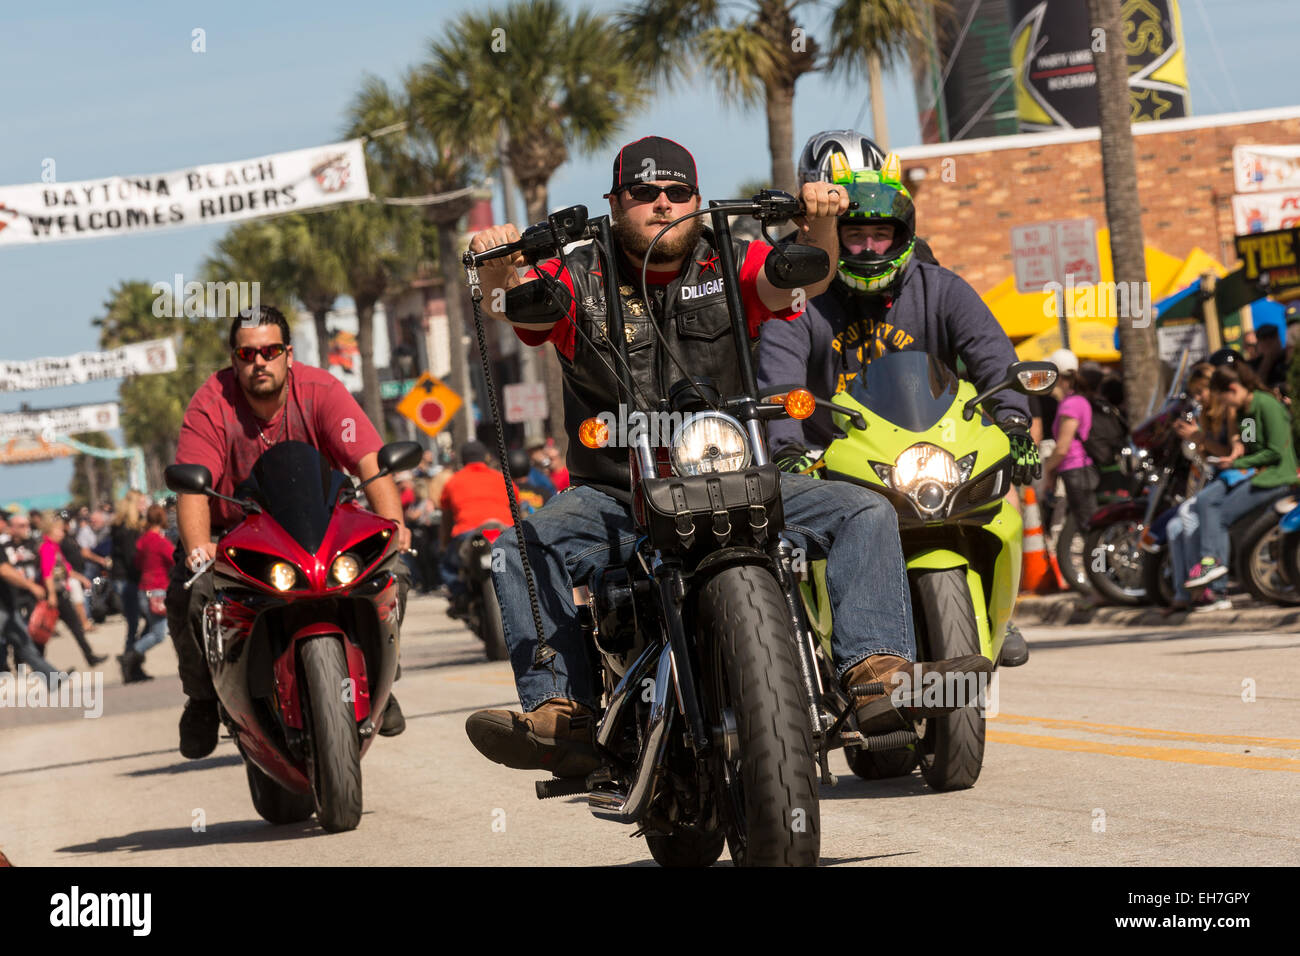 Leather Clad Bikers Cruise Down Main Street During The 74th Annual